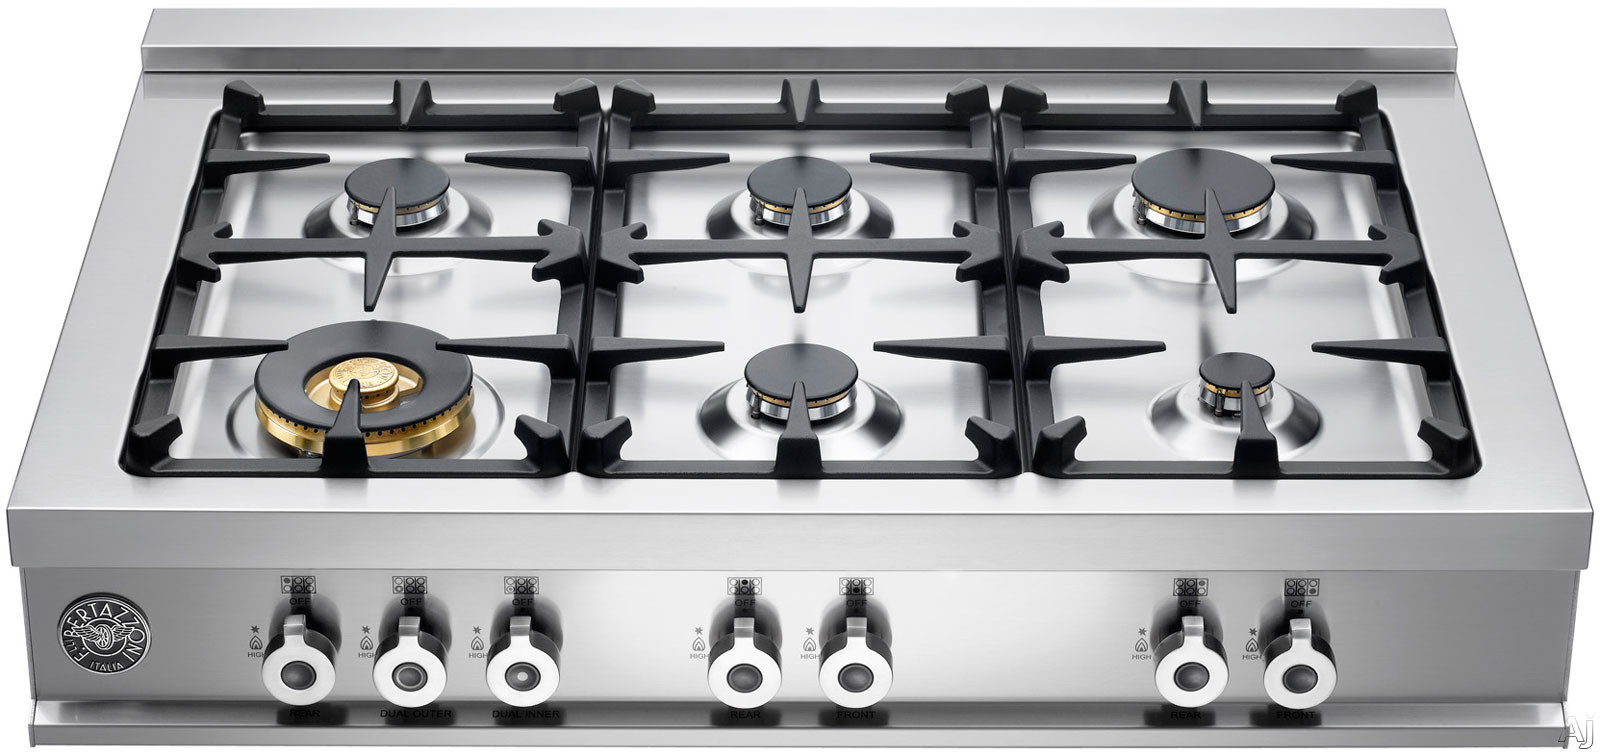 Bertazzoni Professional Series CB36600X 36 Inch Pro-Style Gas Rangetop with 6 Sealed Burners, 18,000 BTU Brass Power Burner, Continuous Grates, Electronic Ignition and Island Trim Included: Natural Gas